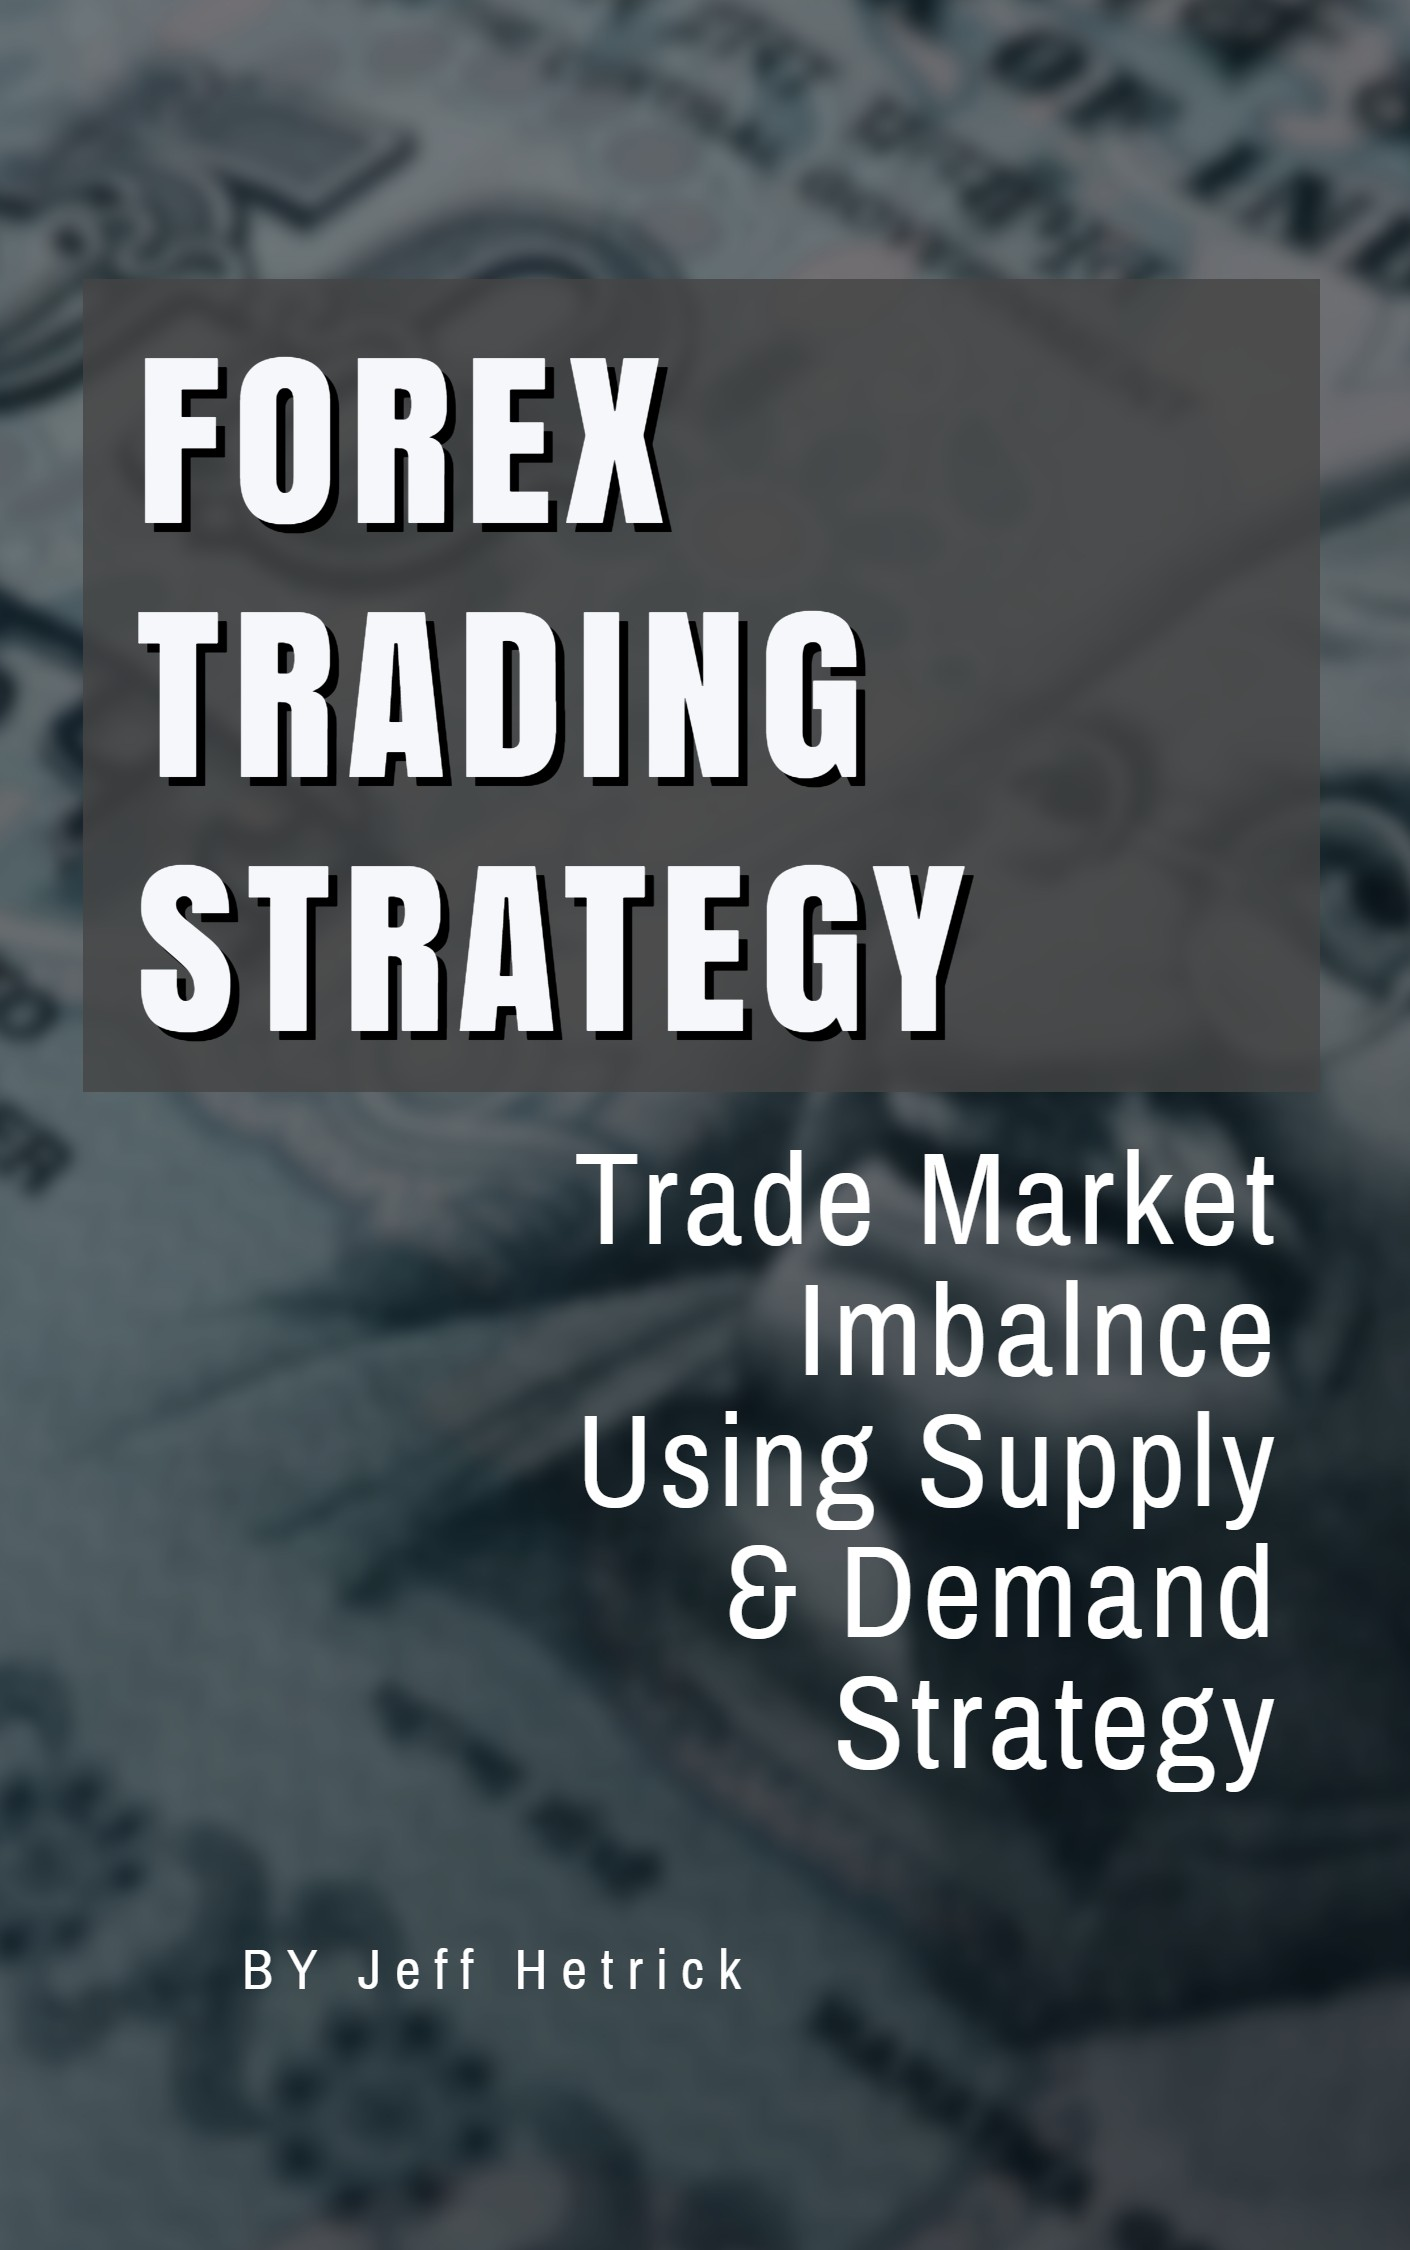 Forex Trading Strategy Trade Market Imbalance Using Supply Demand Strategy An Ebook By Jeff Hetrick -